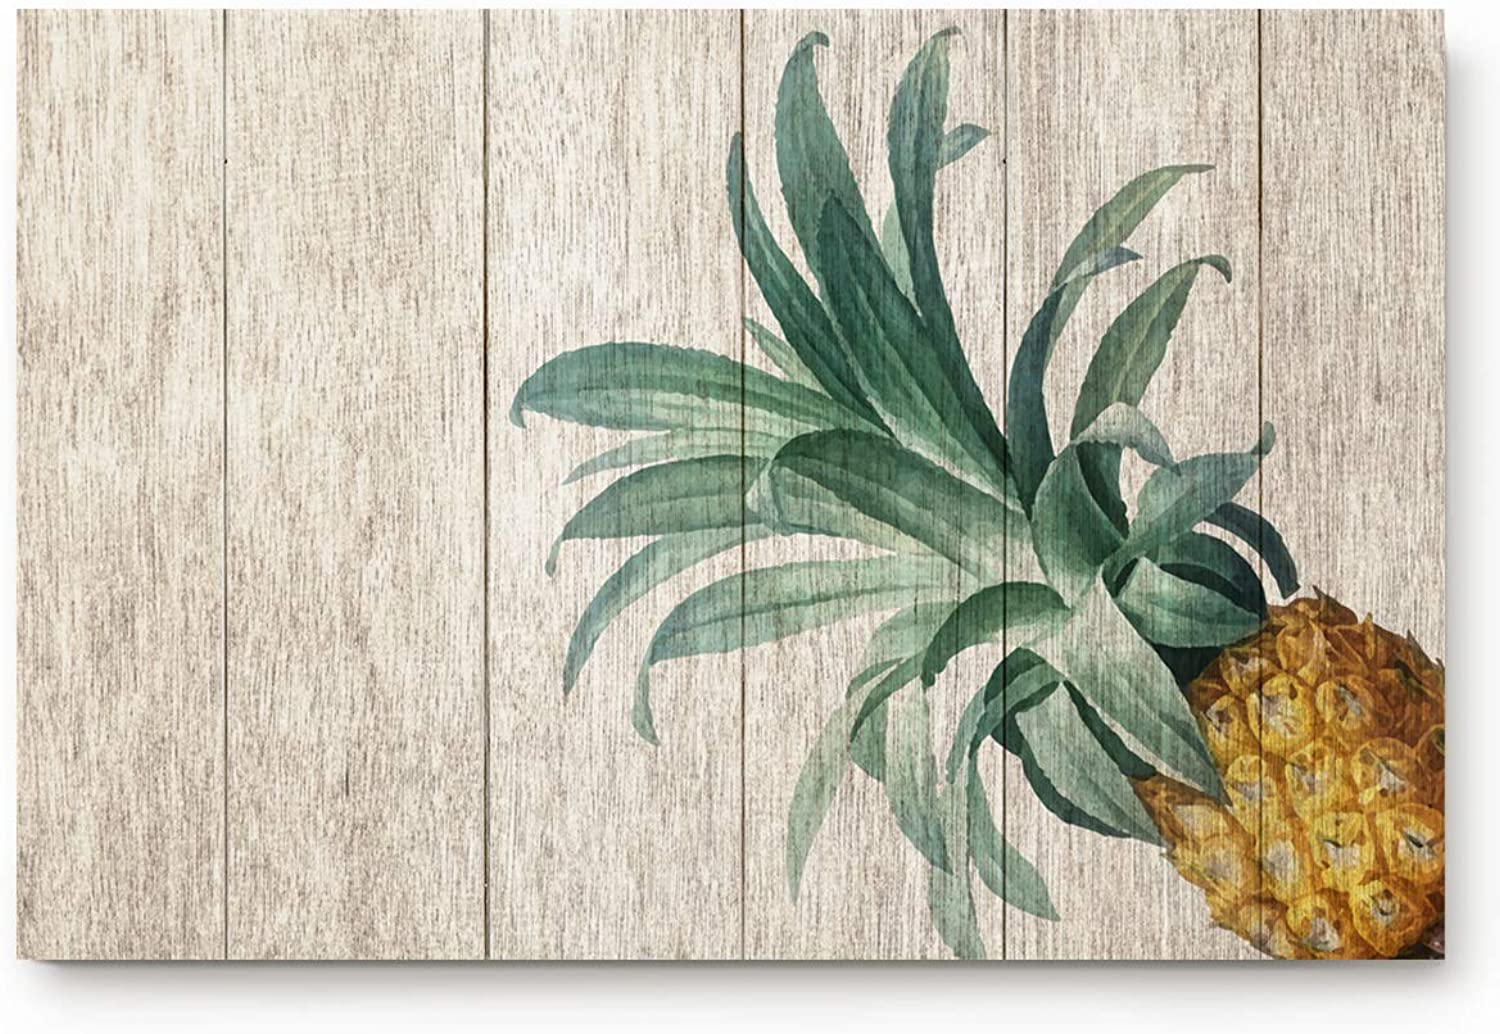 Laibao Indoor Doormat Stylish Welcome Mat Pineapple on Wood Board Entry Non-Slip Rug for Bathroom Bedroom Kitchen Office Dormitory 20x31.5inch